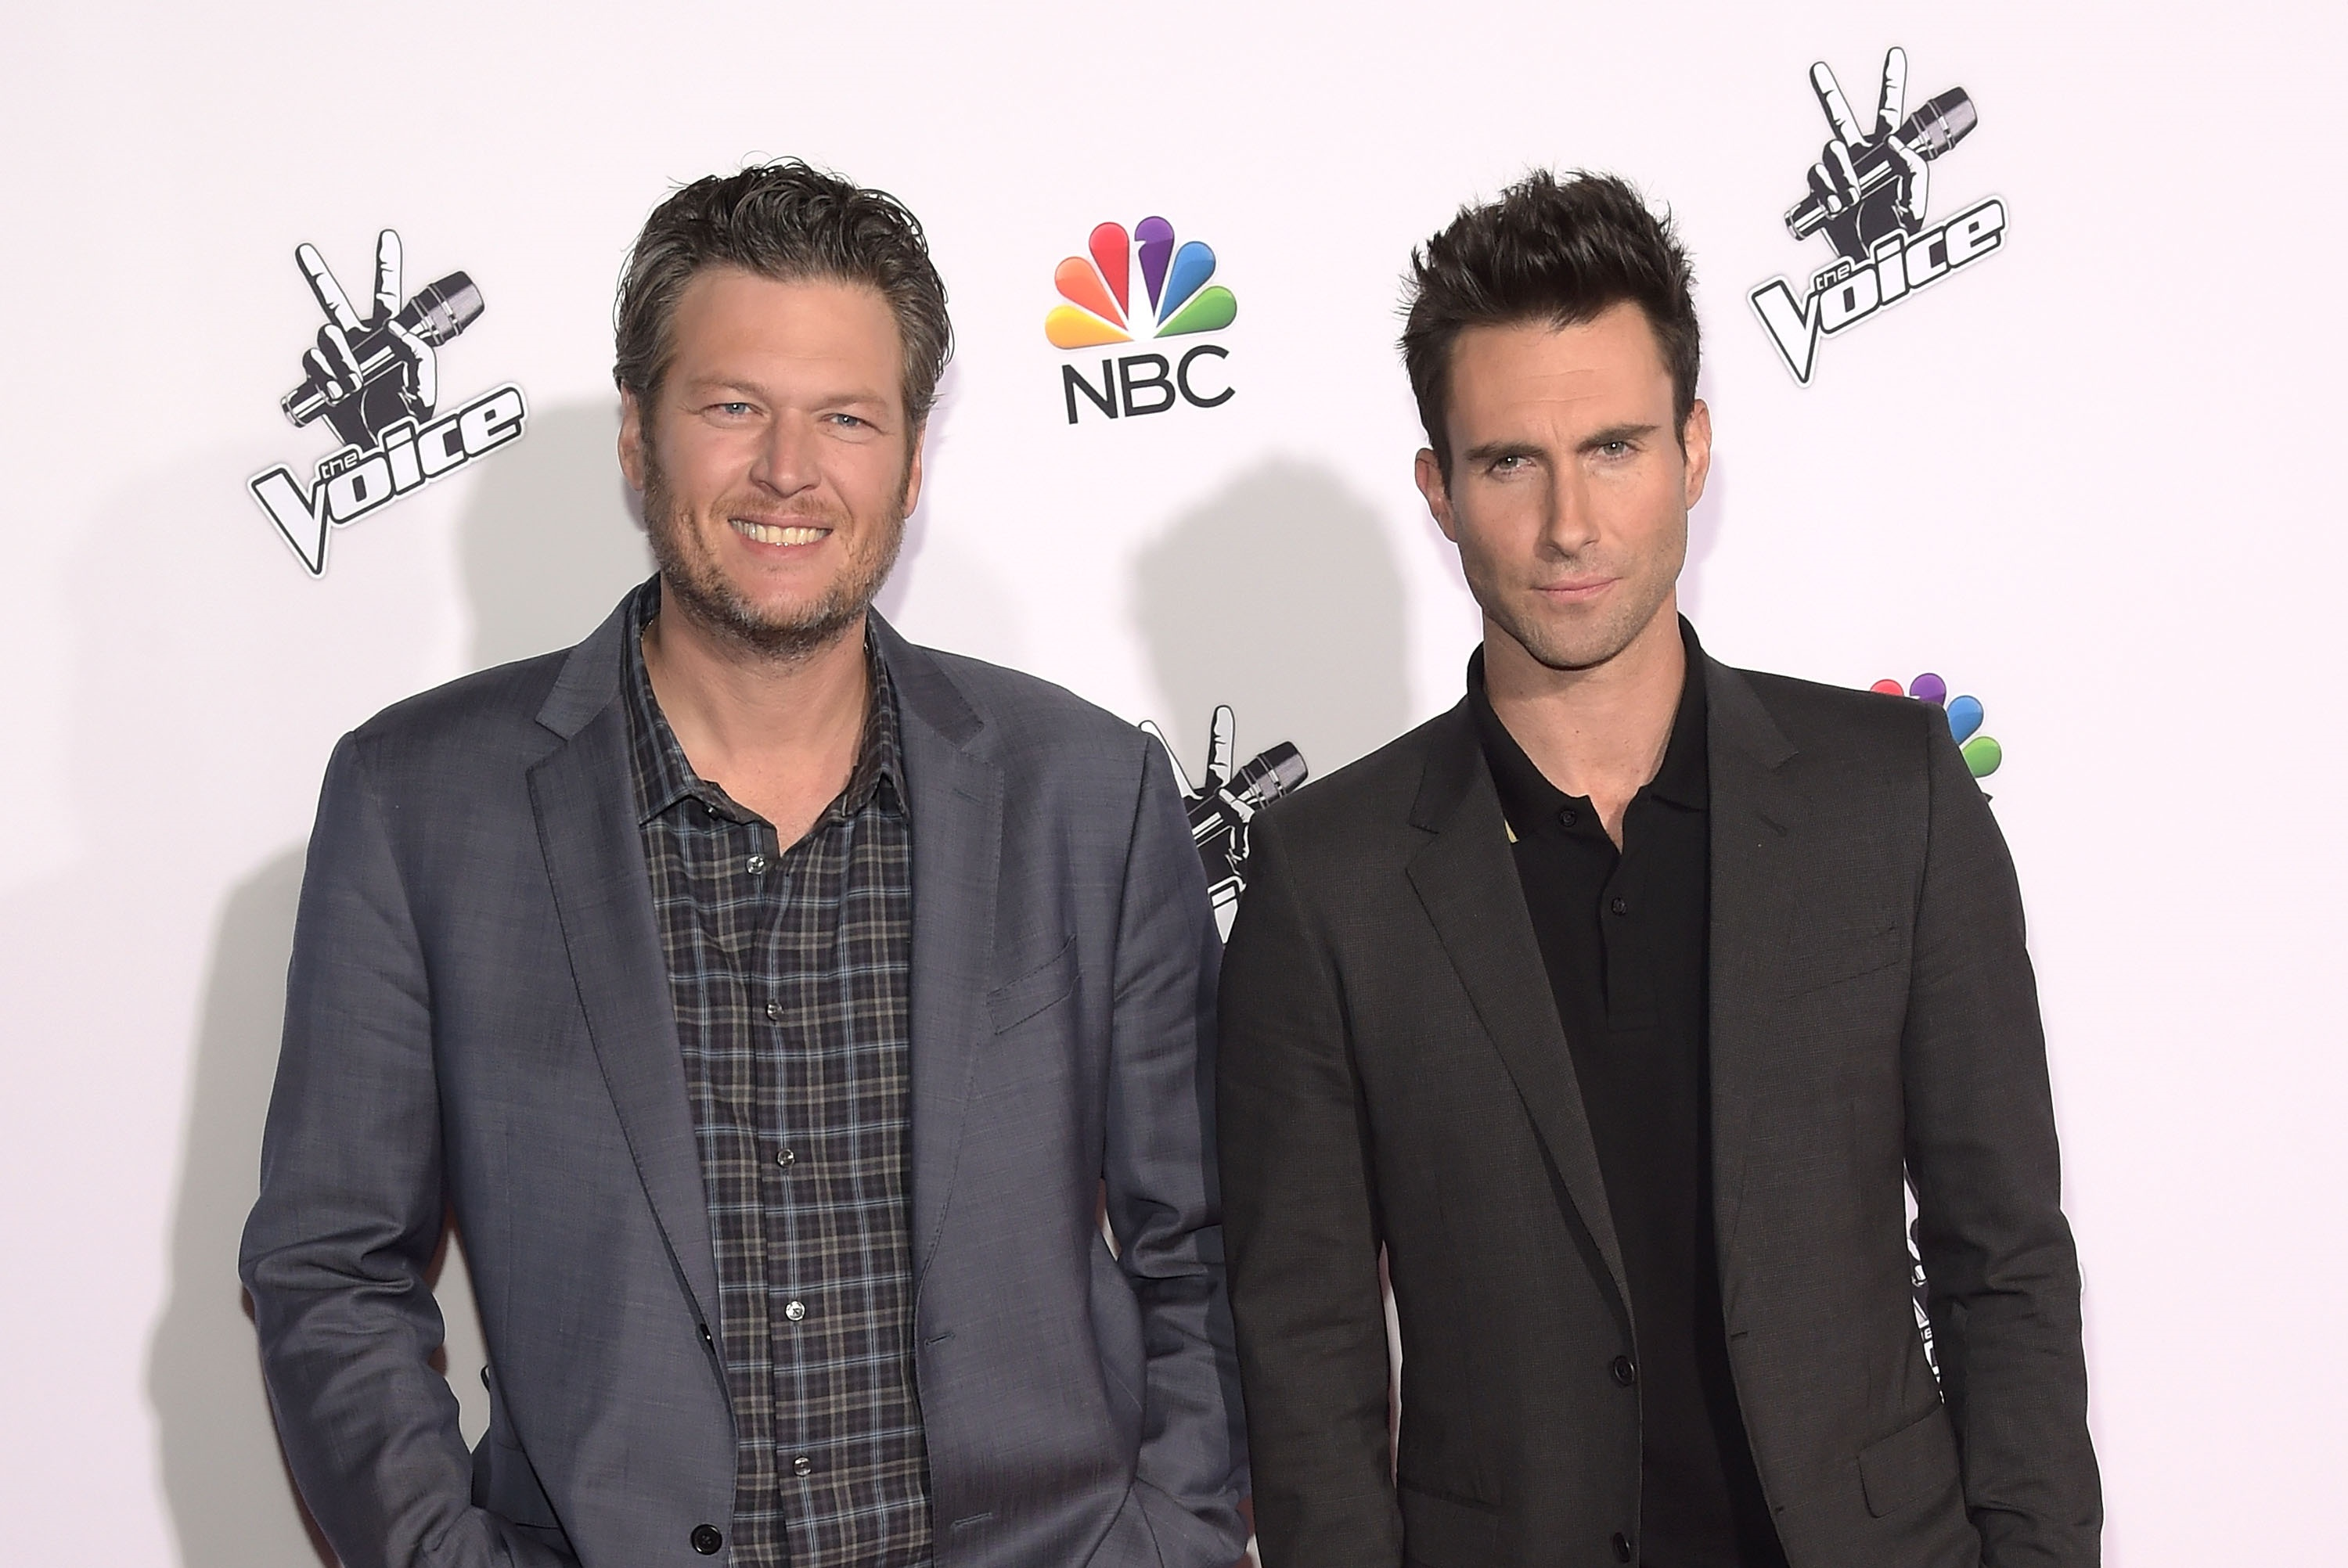 Adam Levine Enlists Blake Shelton for YouTube Series <em>Sugar</em>